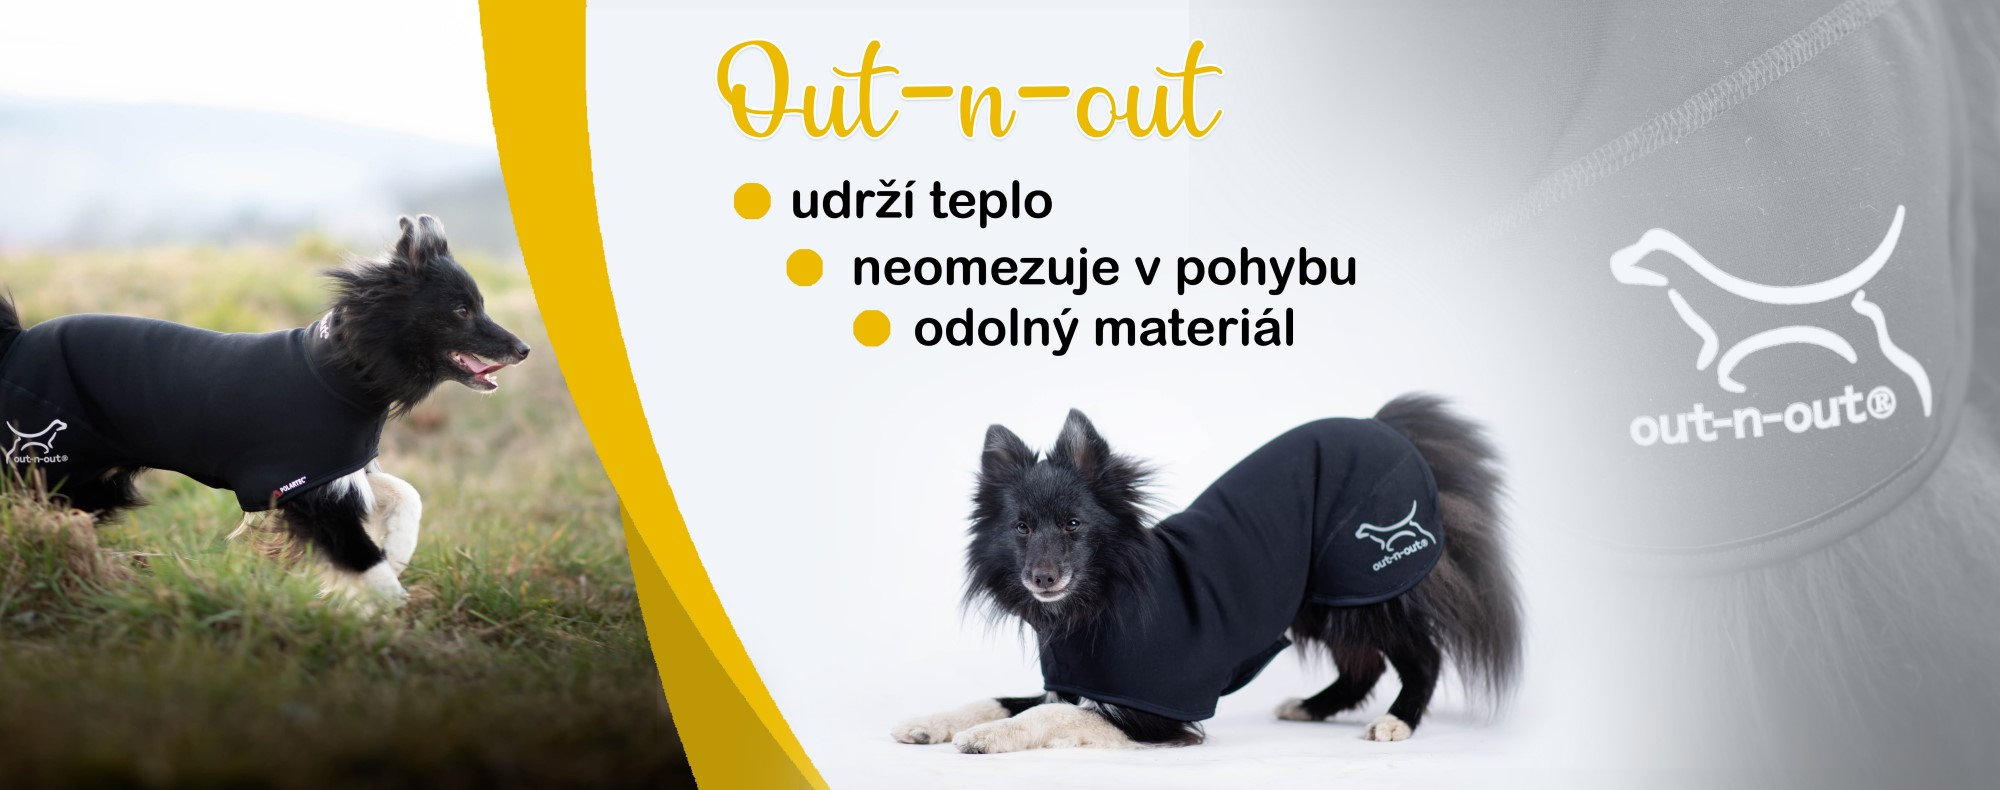 Out_n_out